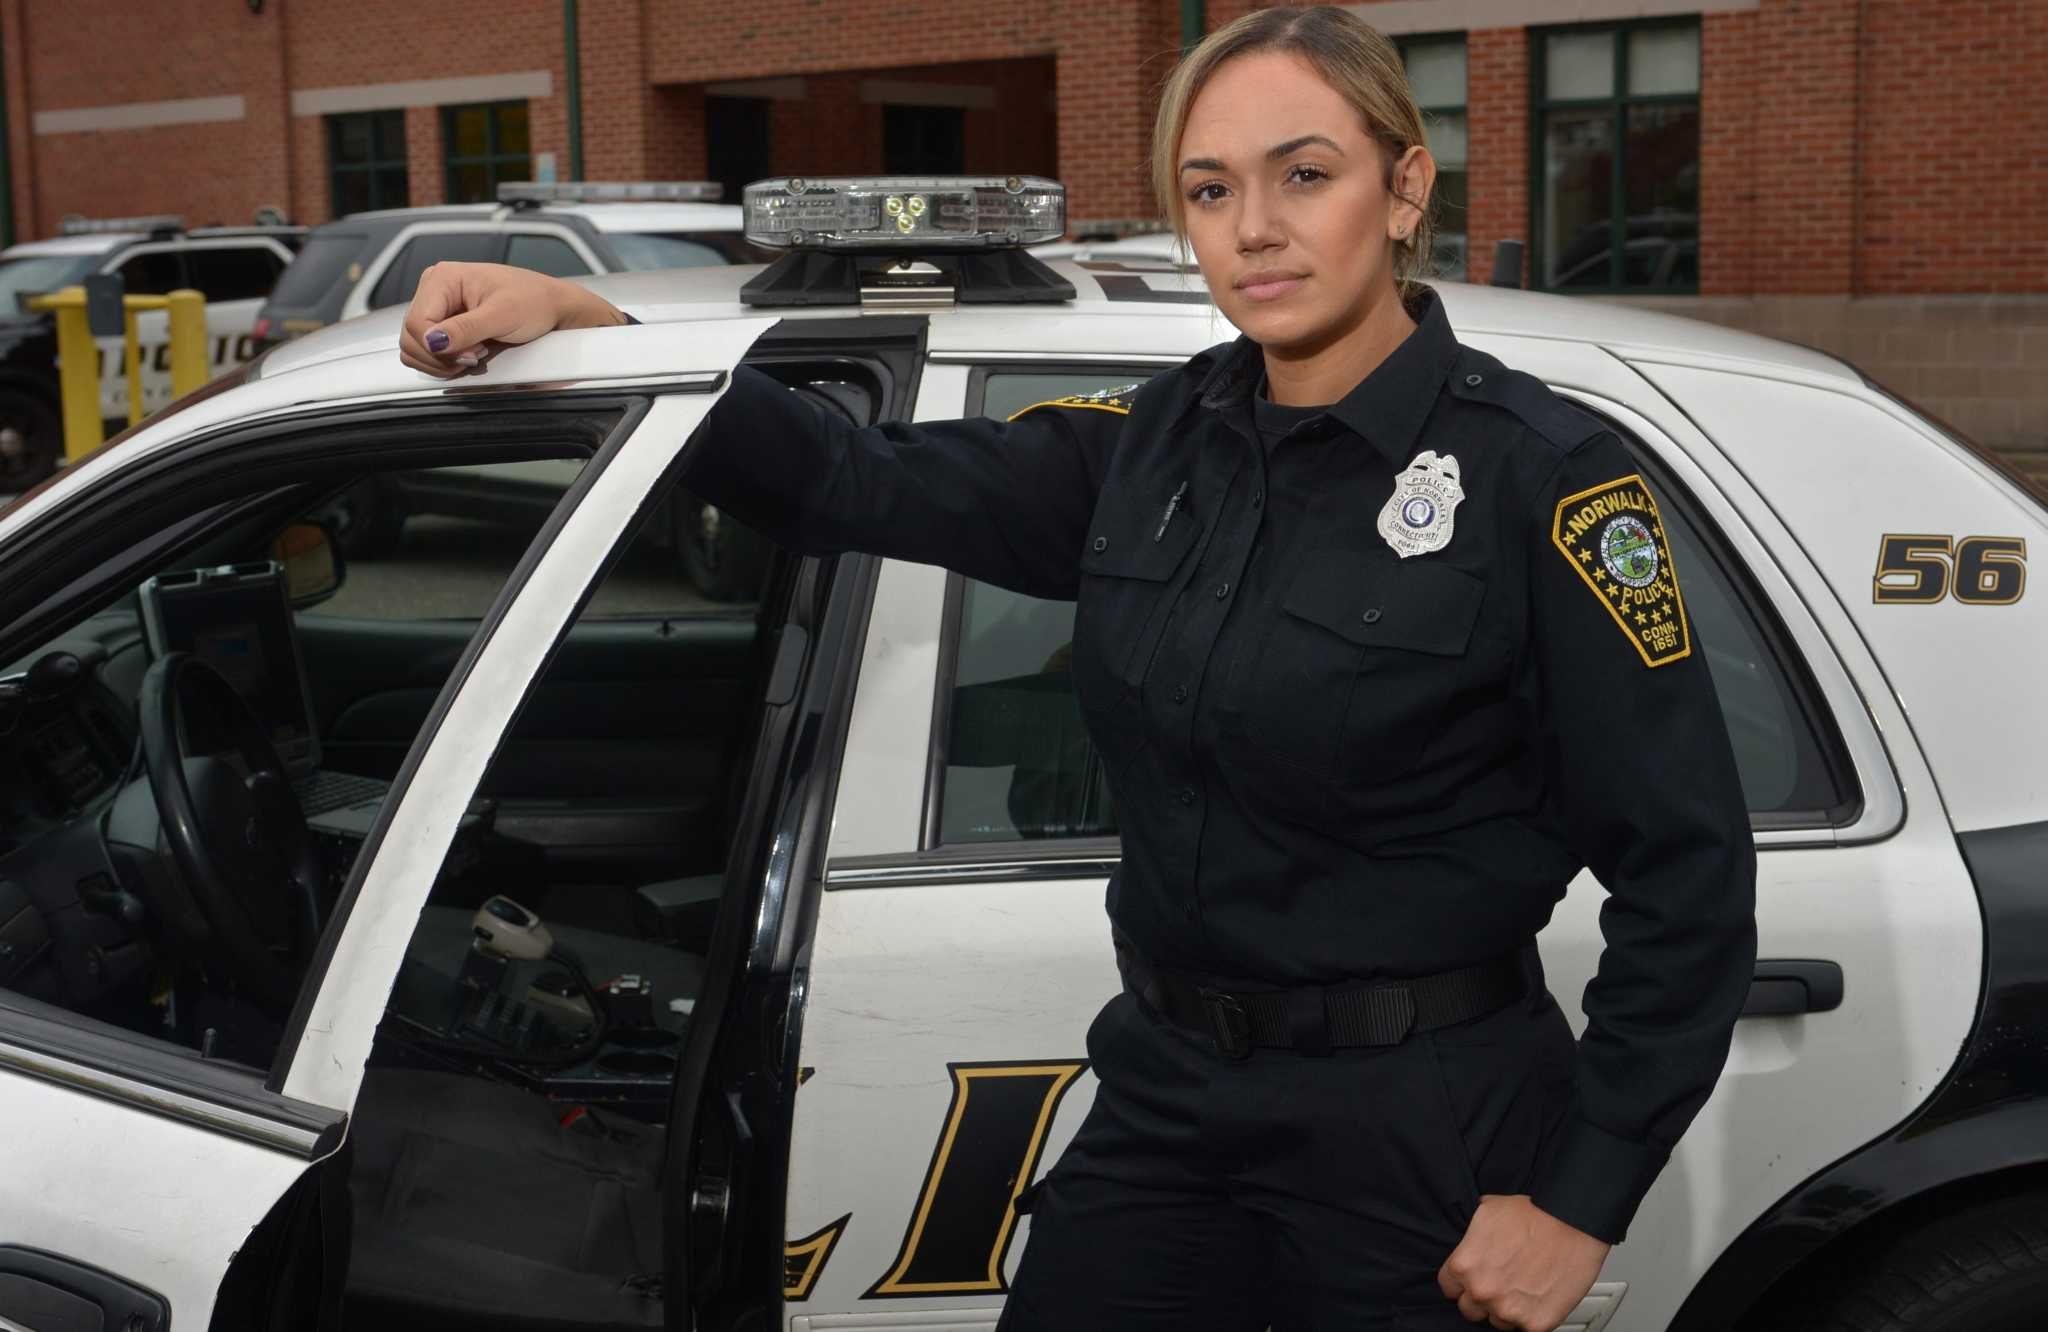 Norwalk police hire first Hispanic female officer in 3